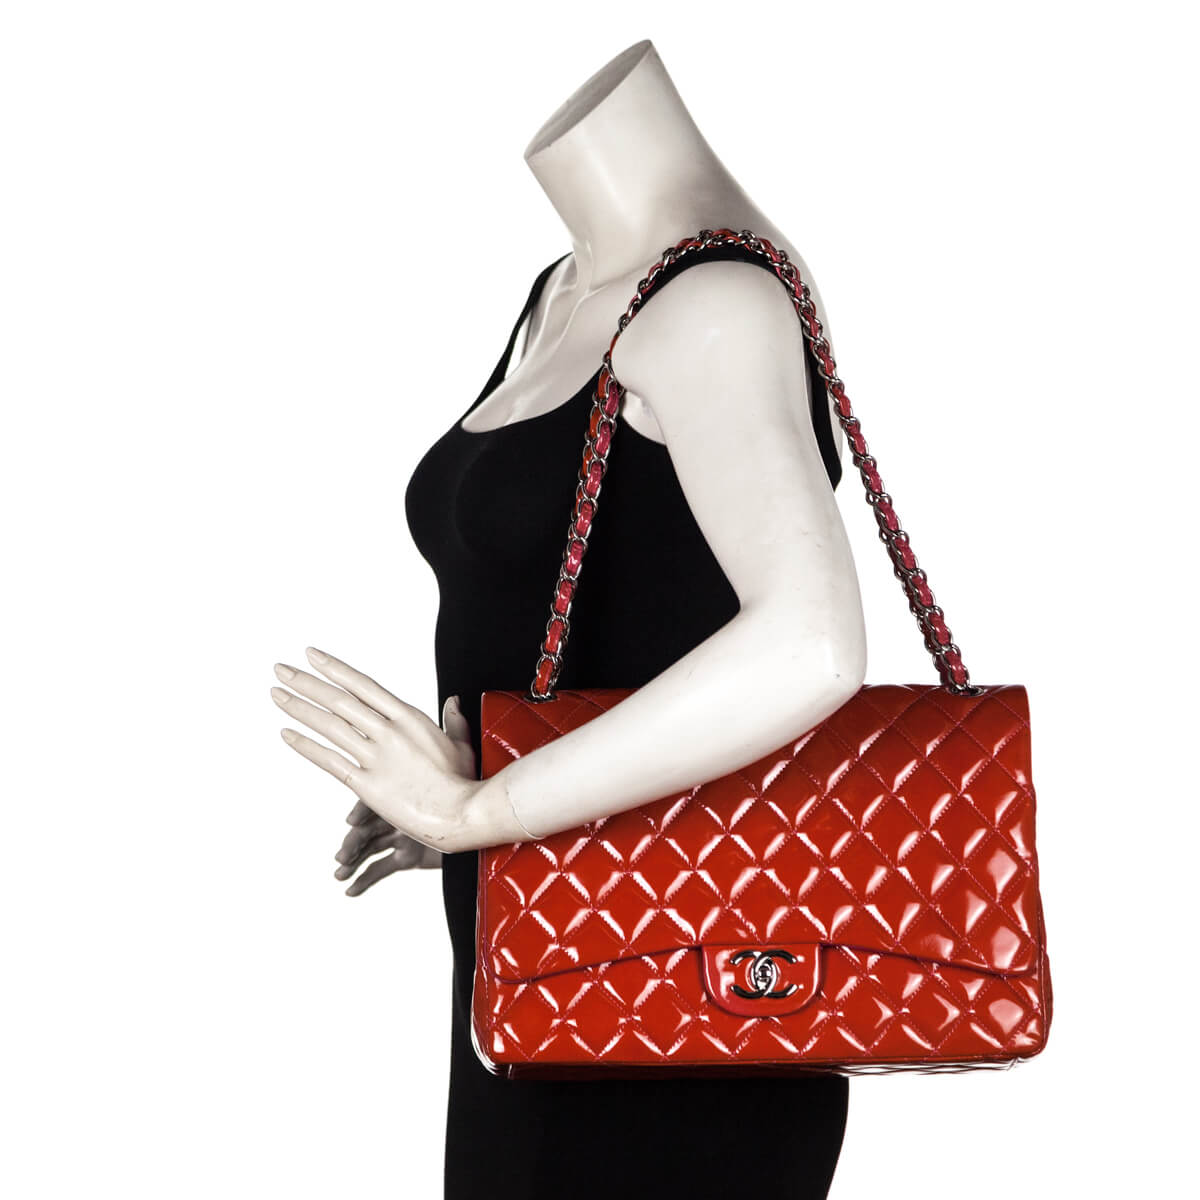 bfe0a2021e84 ... Chanel Red Patent Classic Maxi Flap Bag SHW - LOVE that BAG - Preowned  Authentic Designer